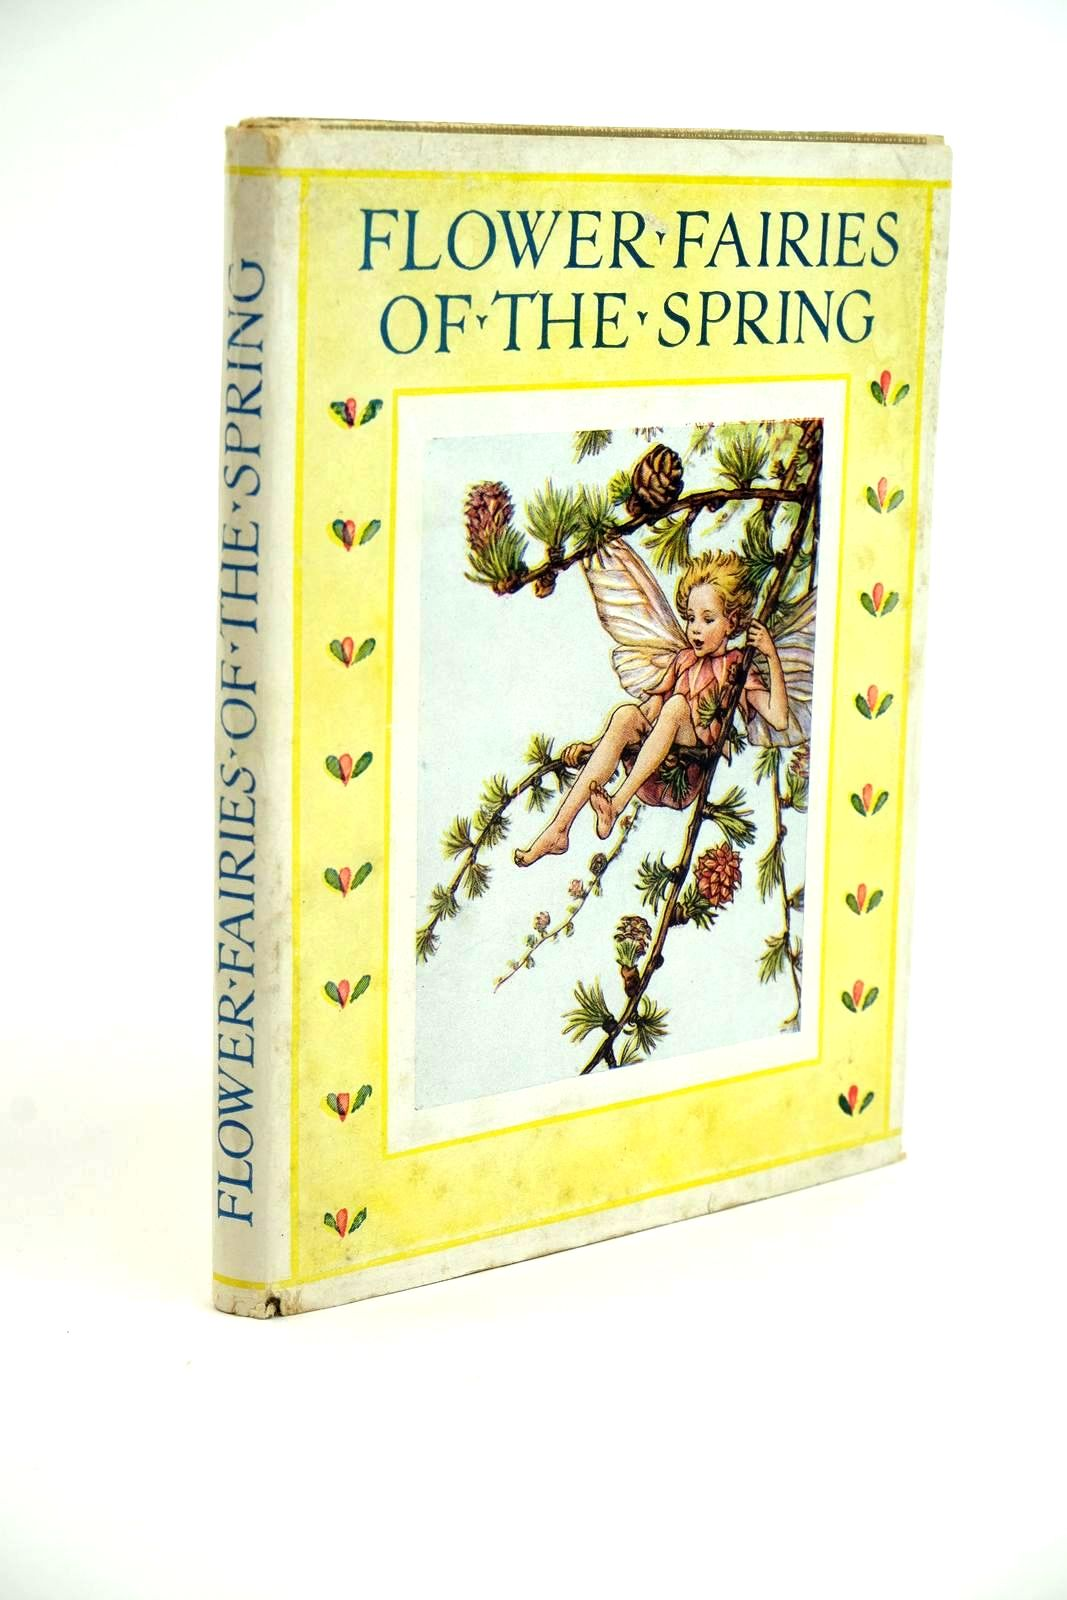 Photo of FLOWER FAIRIES OF THE SPRING written by Barker, Cicely Mary illustrated by Barker, Cicely Mary published by Blackie & Son Ltd. (STOCK CODE: 1321679)  for sale by Stella & Rose's Books